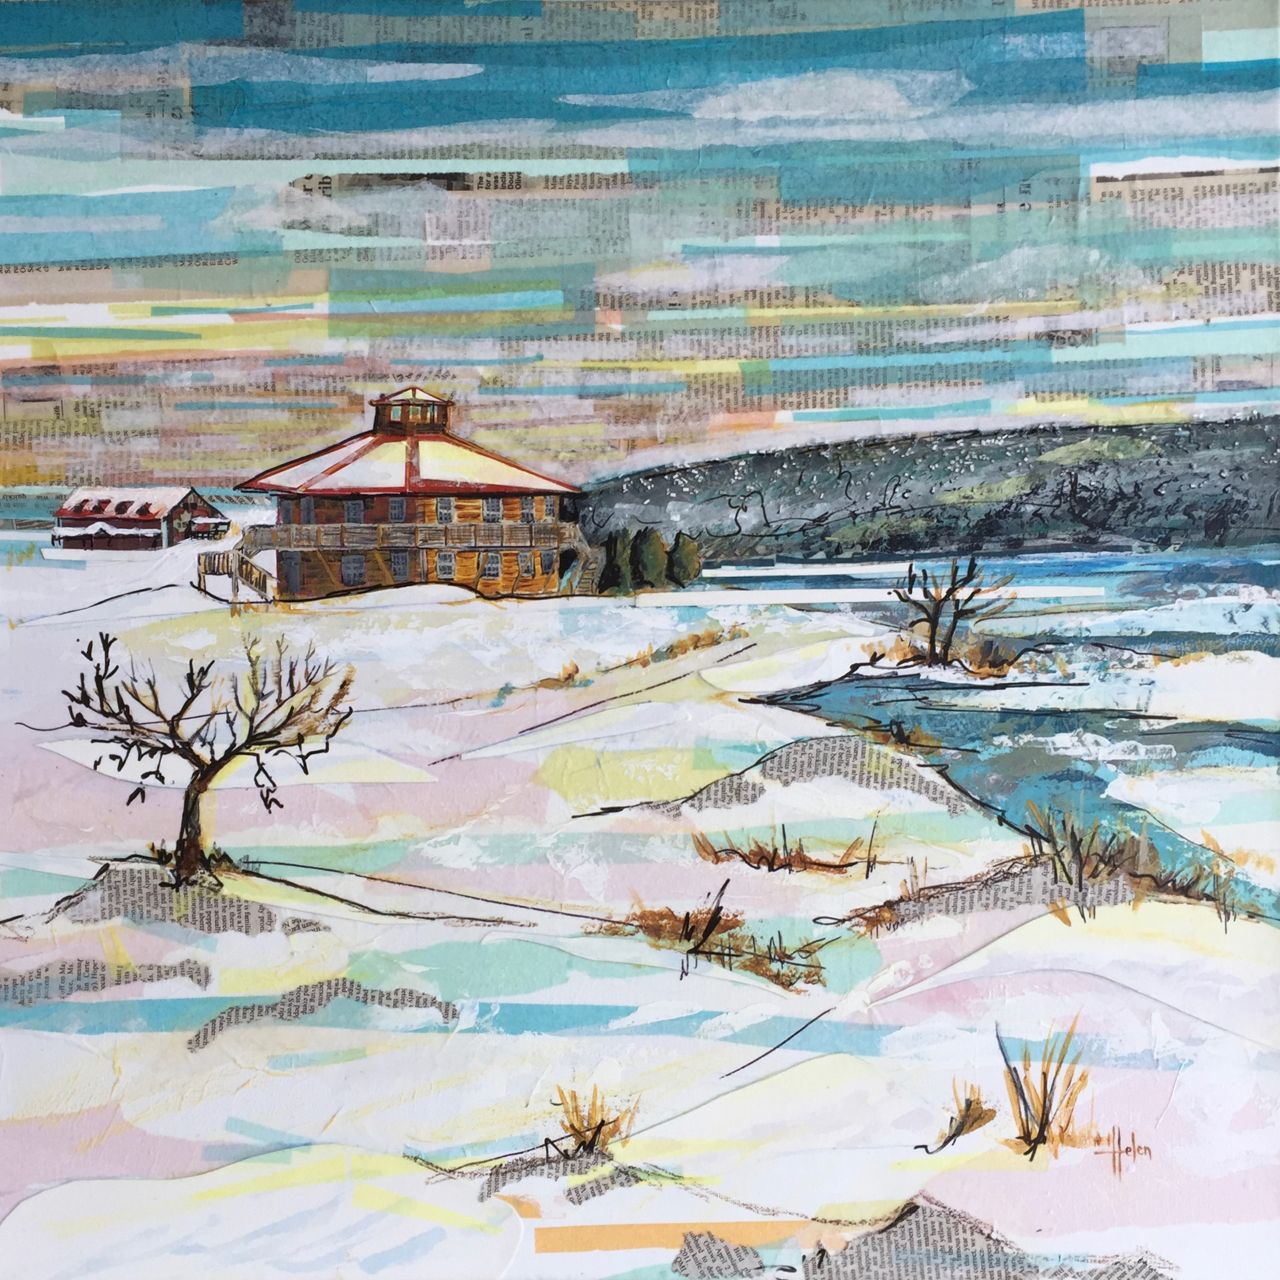 'Christmas Morning' by Helen Siksek, mixed media collage on canvas. | Abstract artwork, Mixed ...